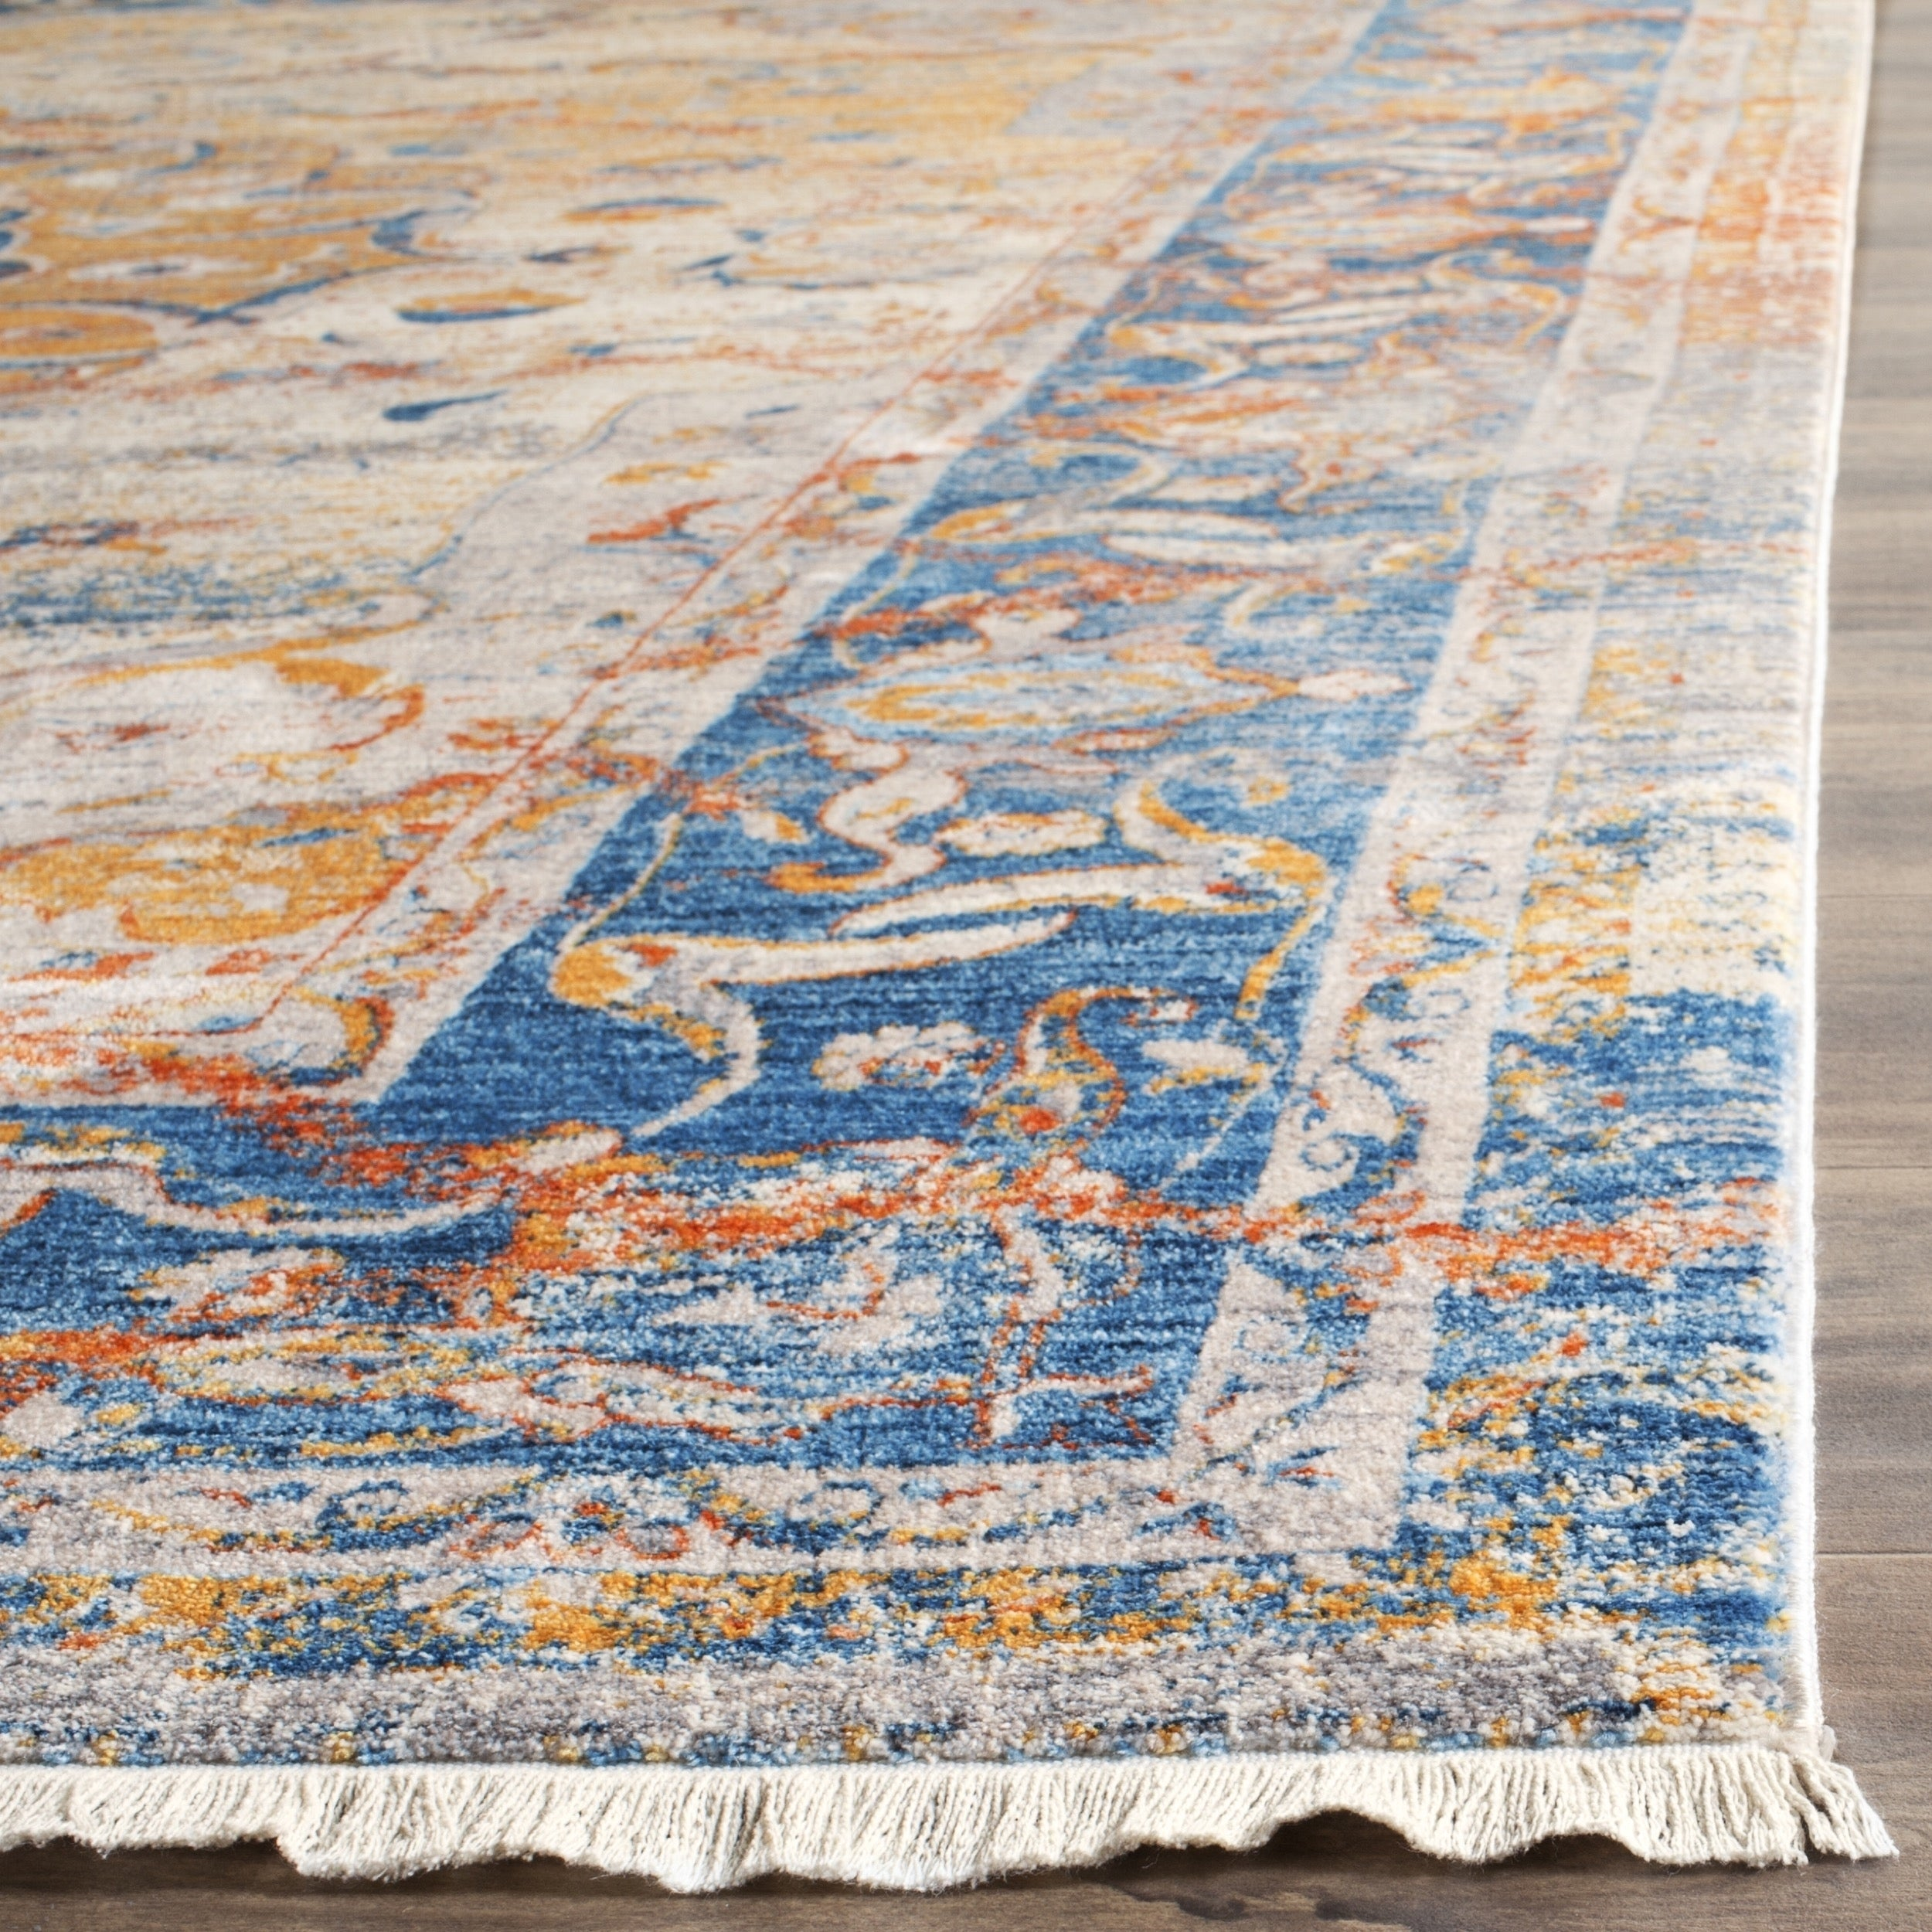 Safavieh Vintage Persian Blue Multi Distressed Rug 4 X 6 On Free Shipping Today Com 11720950